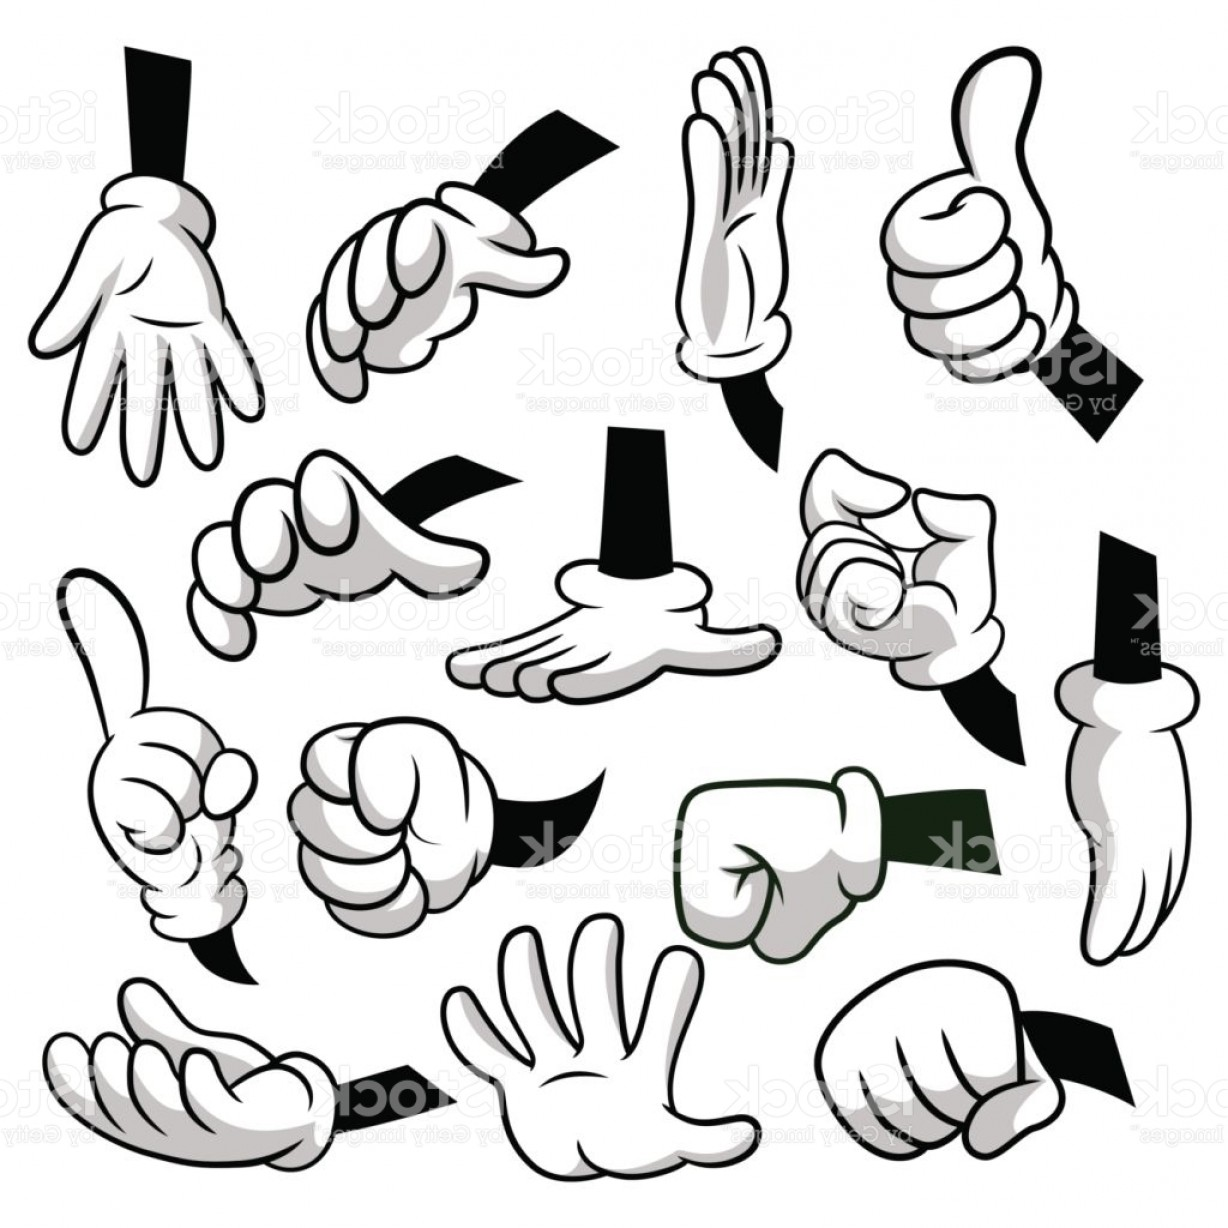 Hand Vector Clip Art: Cartoon Hands With Gloves Icon Set Isolated On White Background Vector Clipart Parts Gm